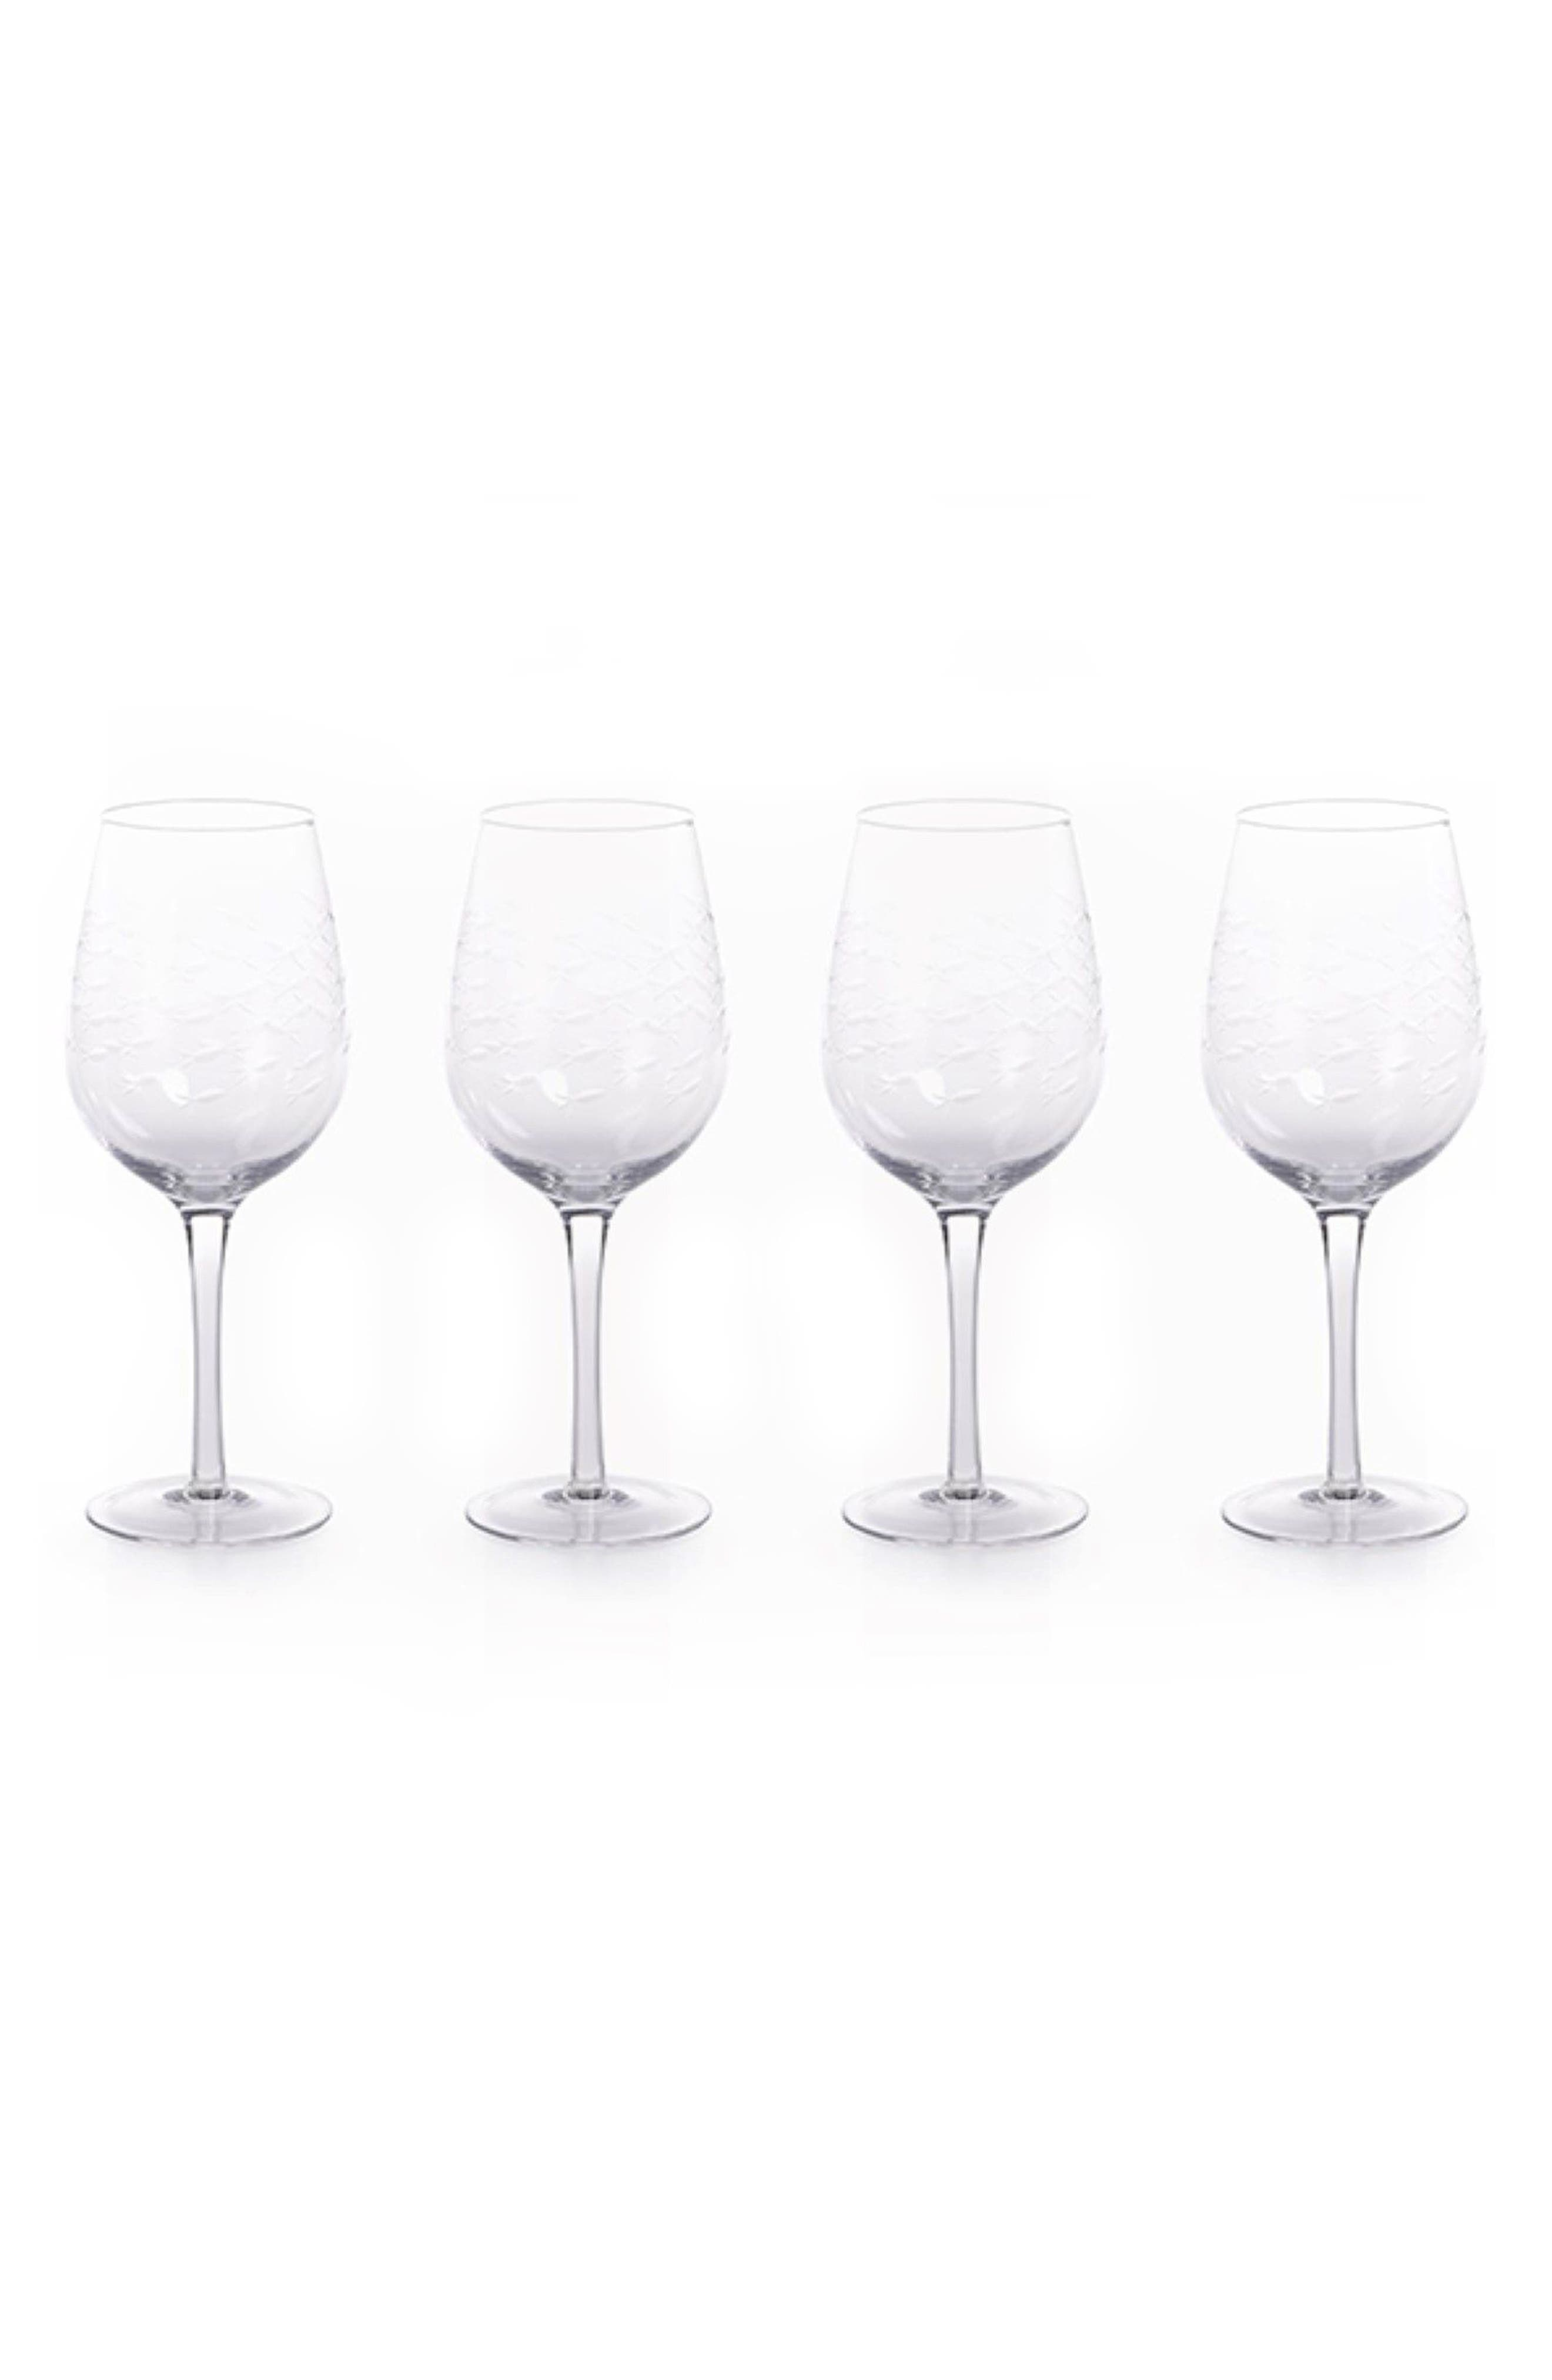 Main Image - Zodax Keely Set of 4 Wine Glasses